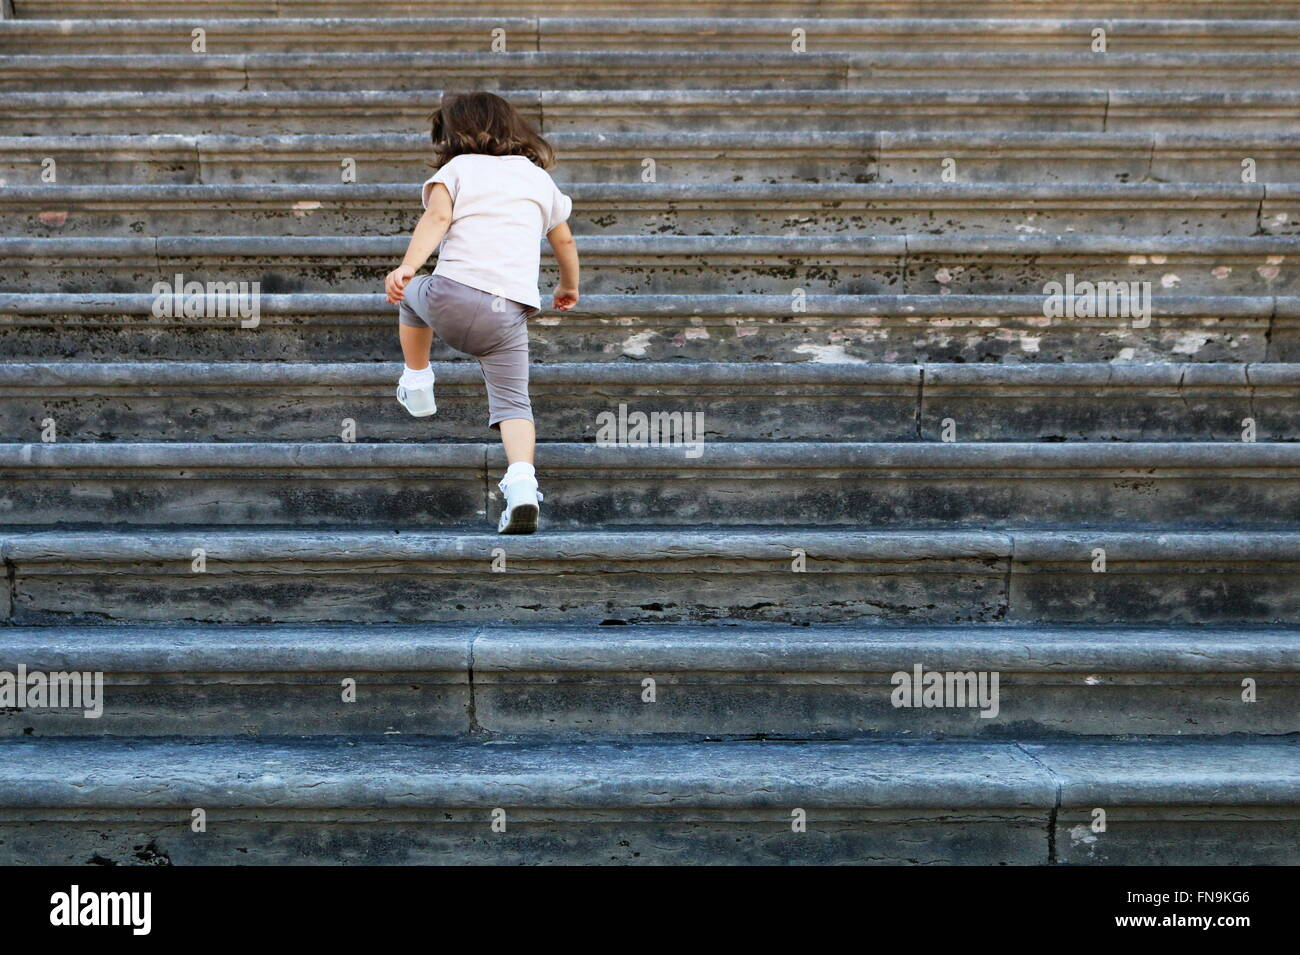 Girl en montant un escalier, Venise, Italie Photo Stock